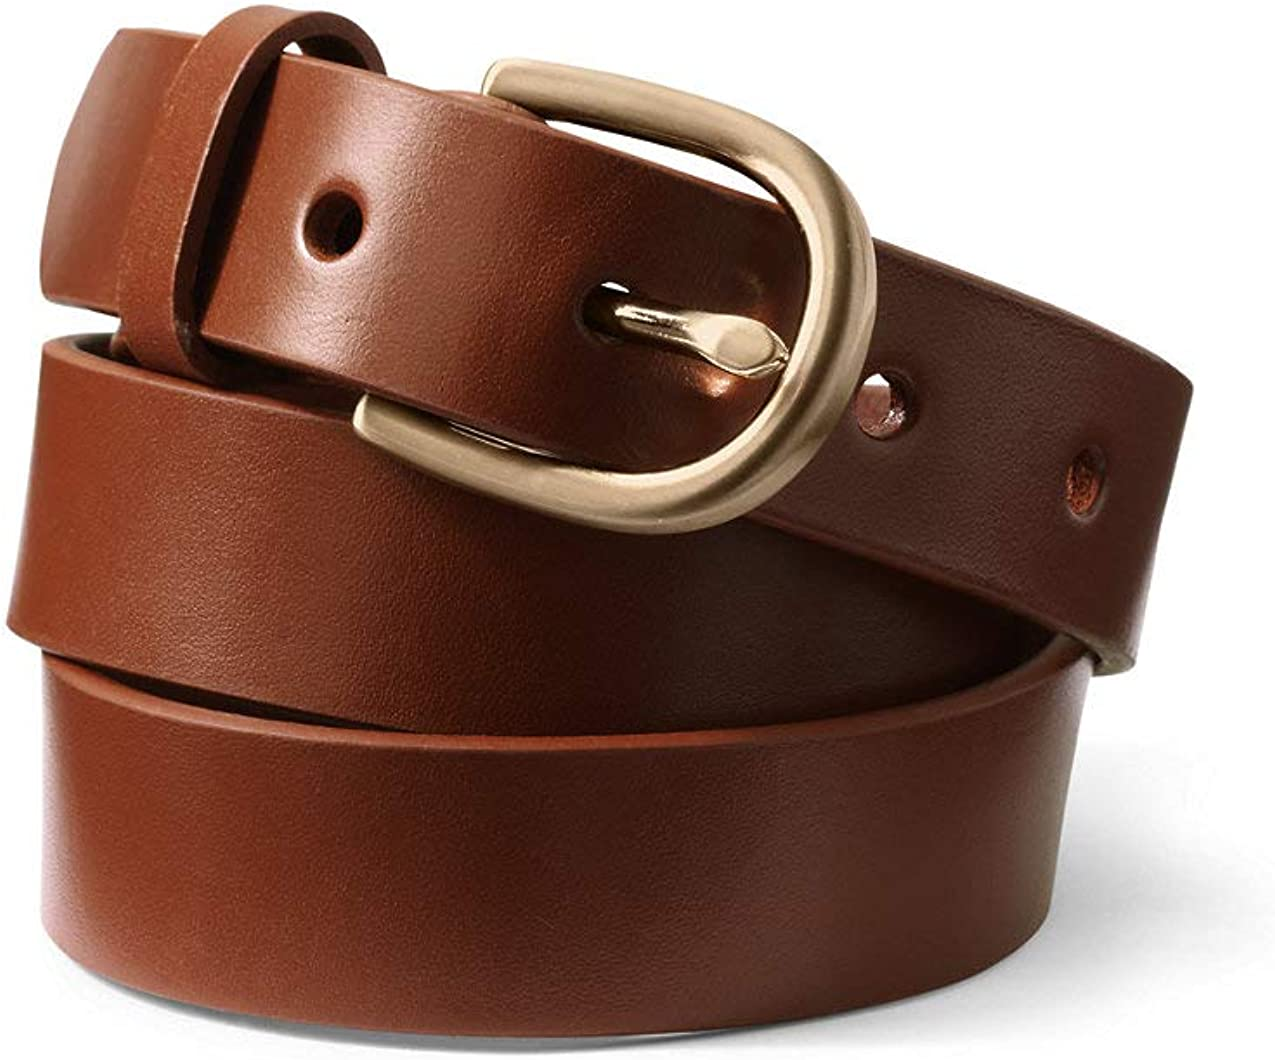 security Store Lands' End Women's Belt Classic Leather